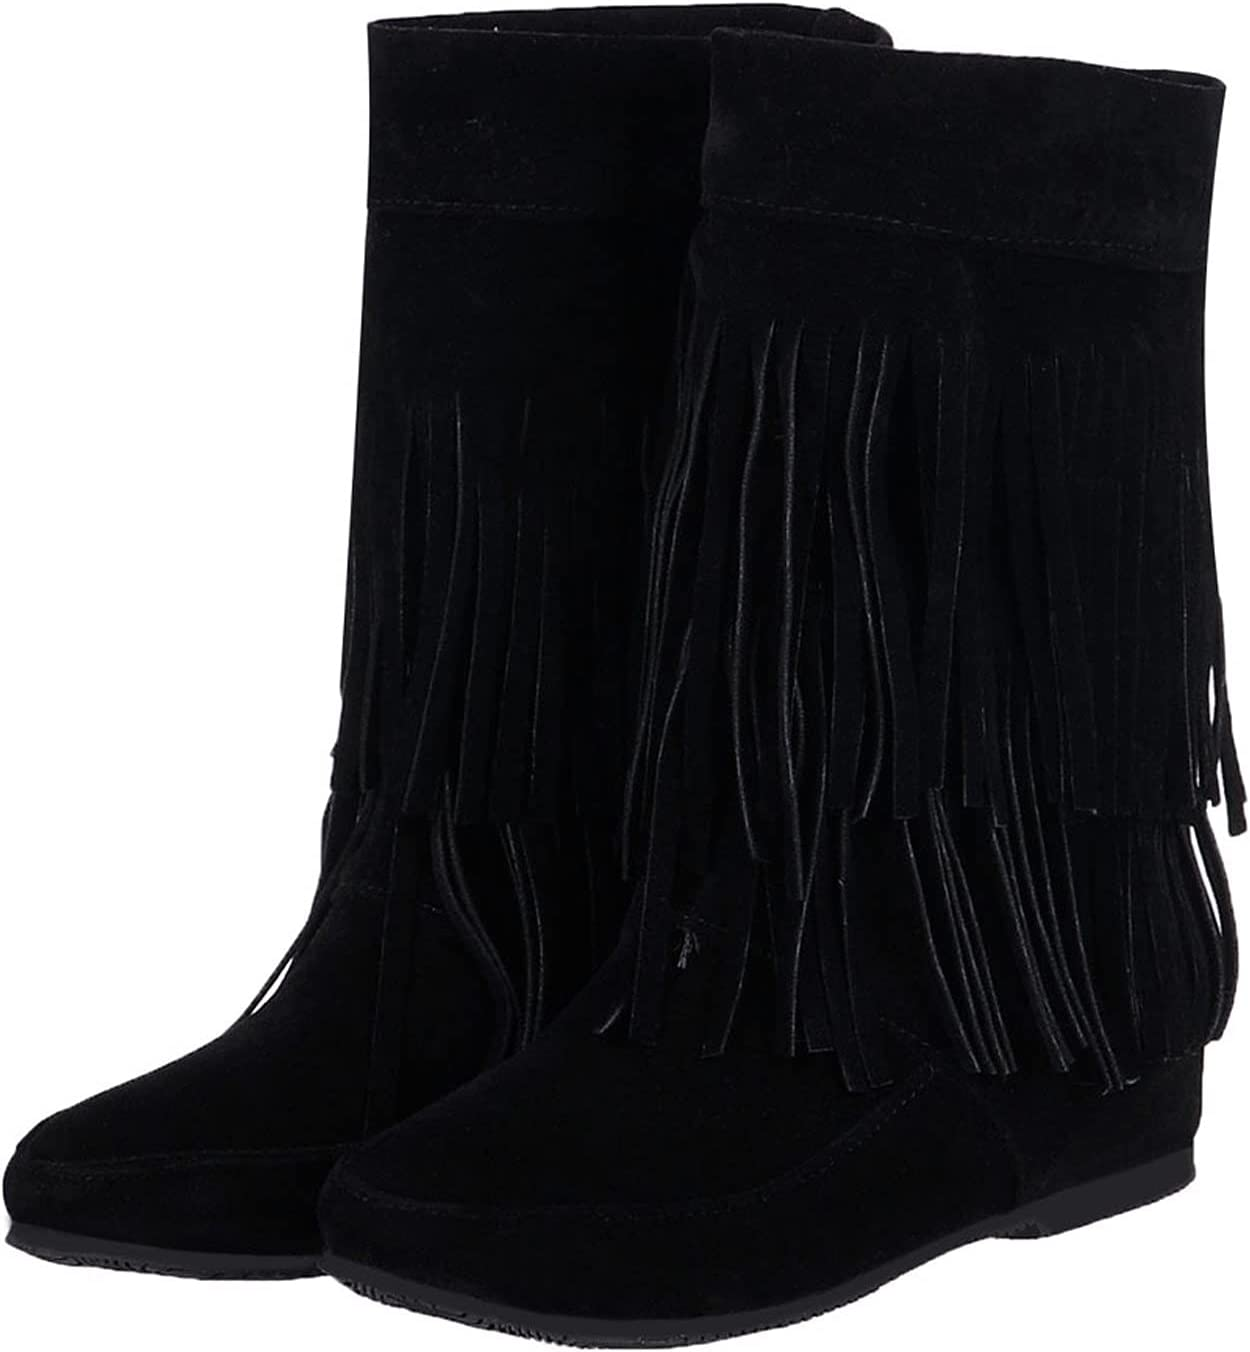 ayaso Womens Western Cowgirl Mid Square-Toe He Chunky Super Gorgeous Special SALE held Boots Calf